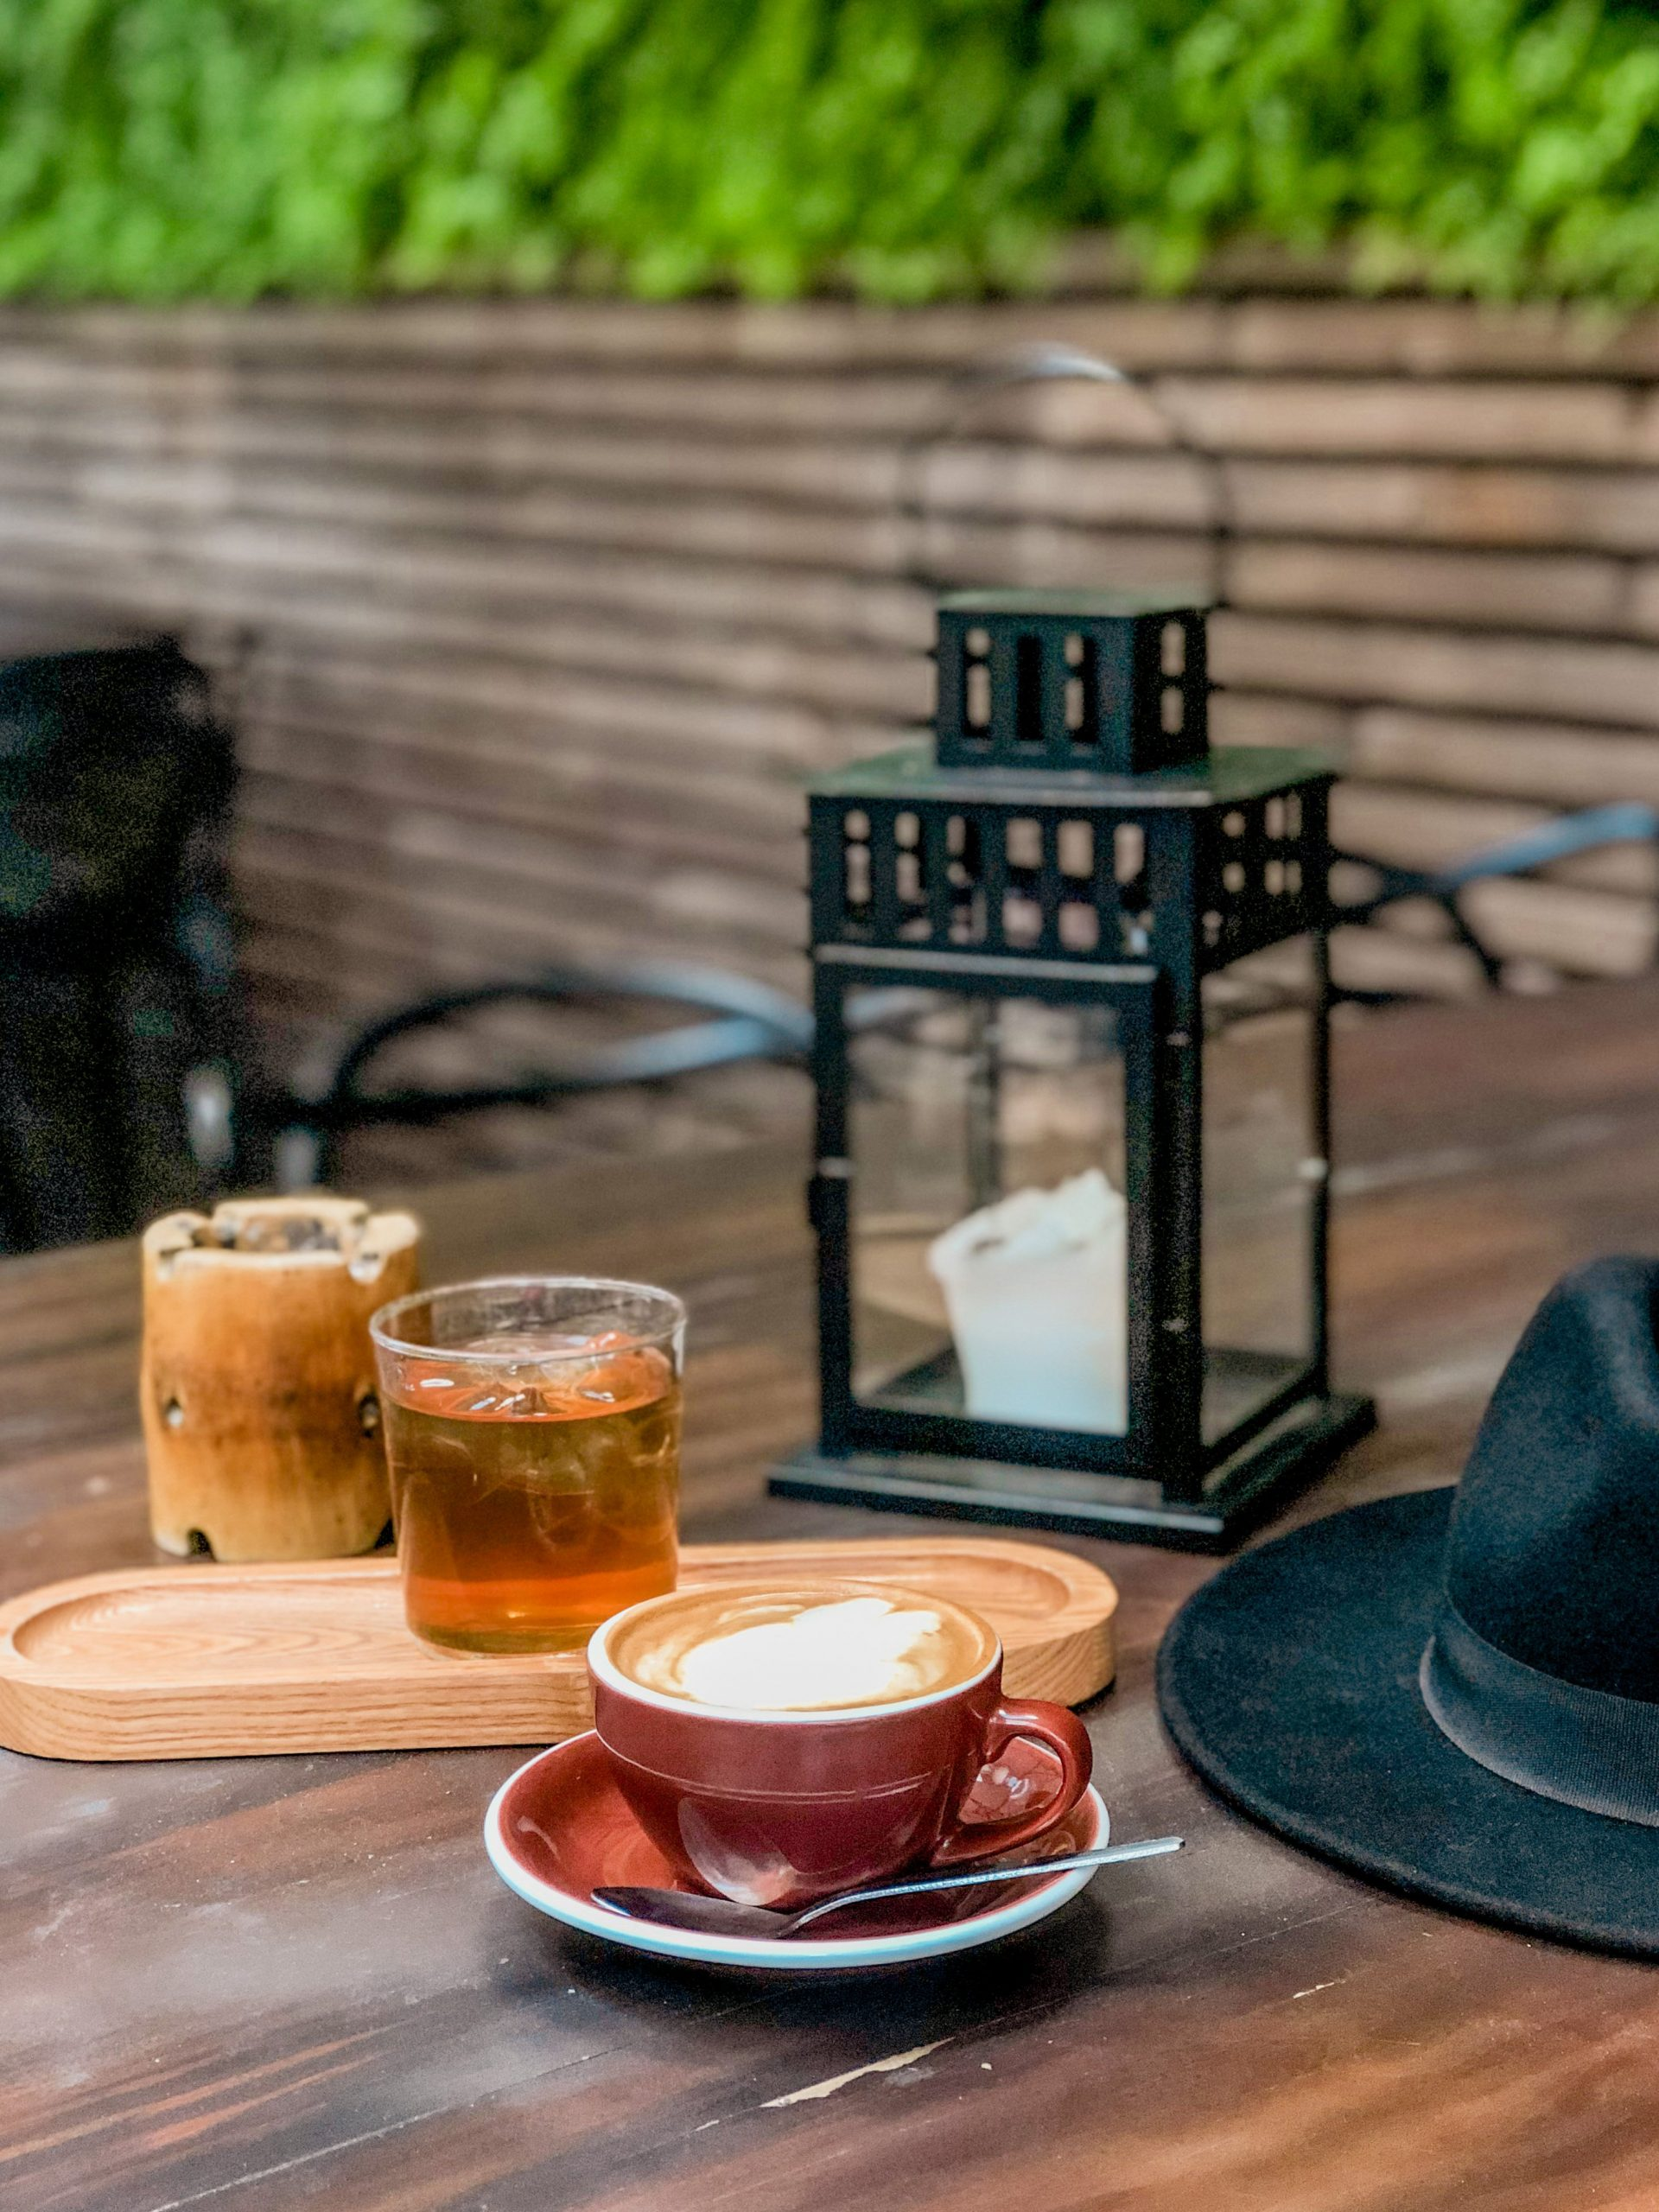 Best cafes in Gaia